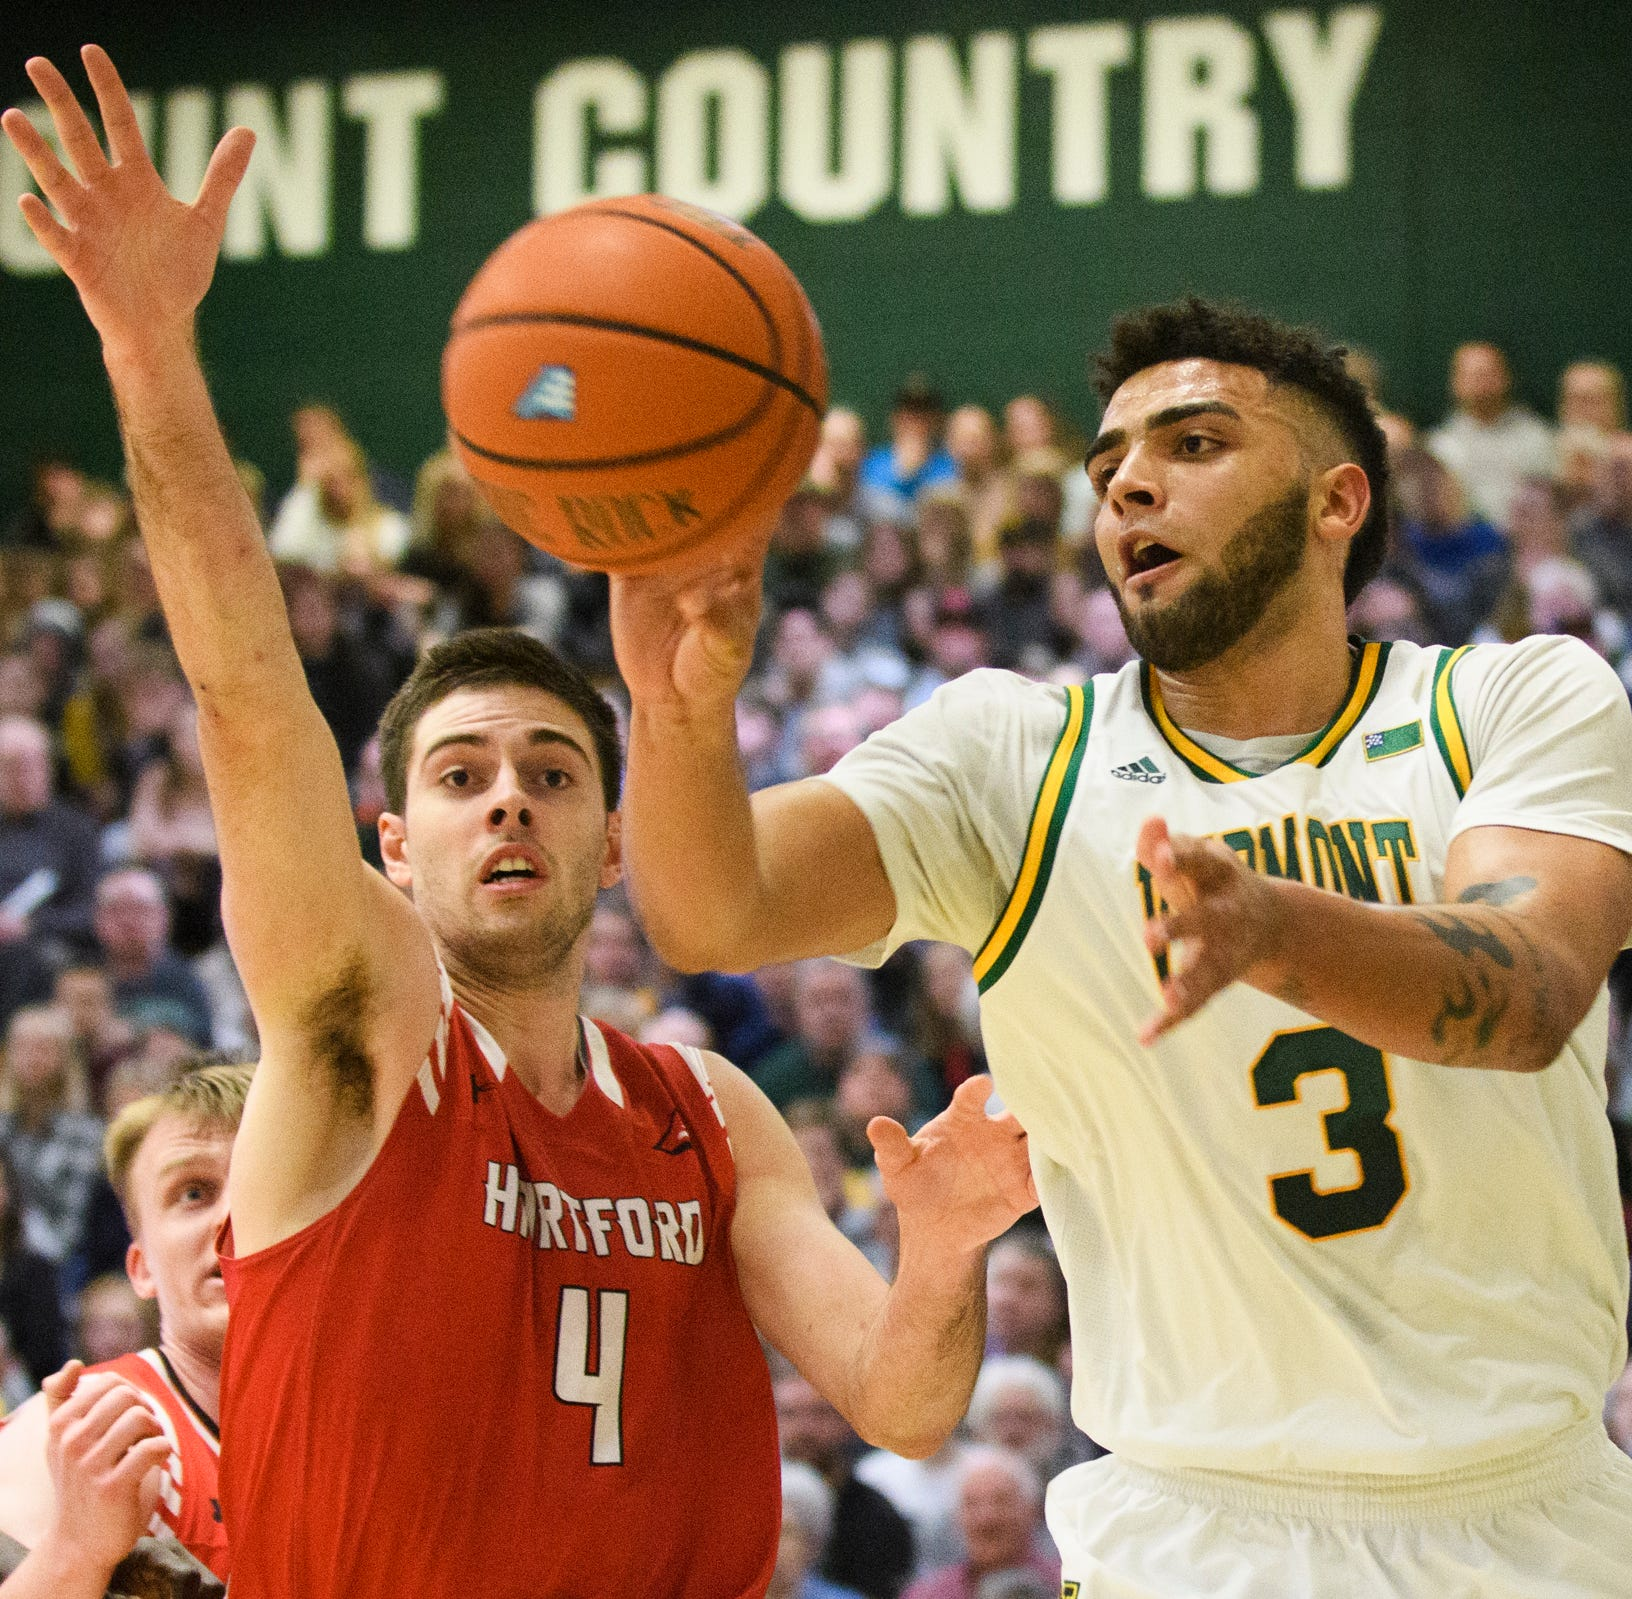 UVM men's basketball outlasts Hartford to clinch home quarterfinal game